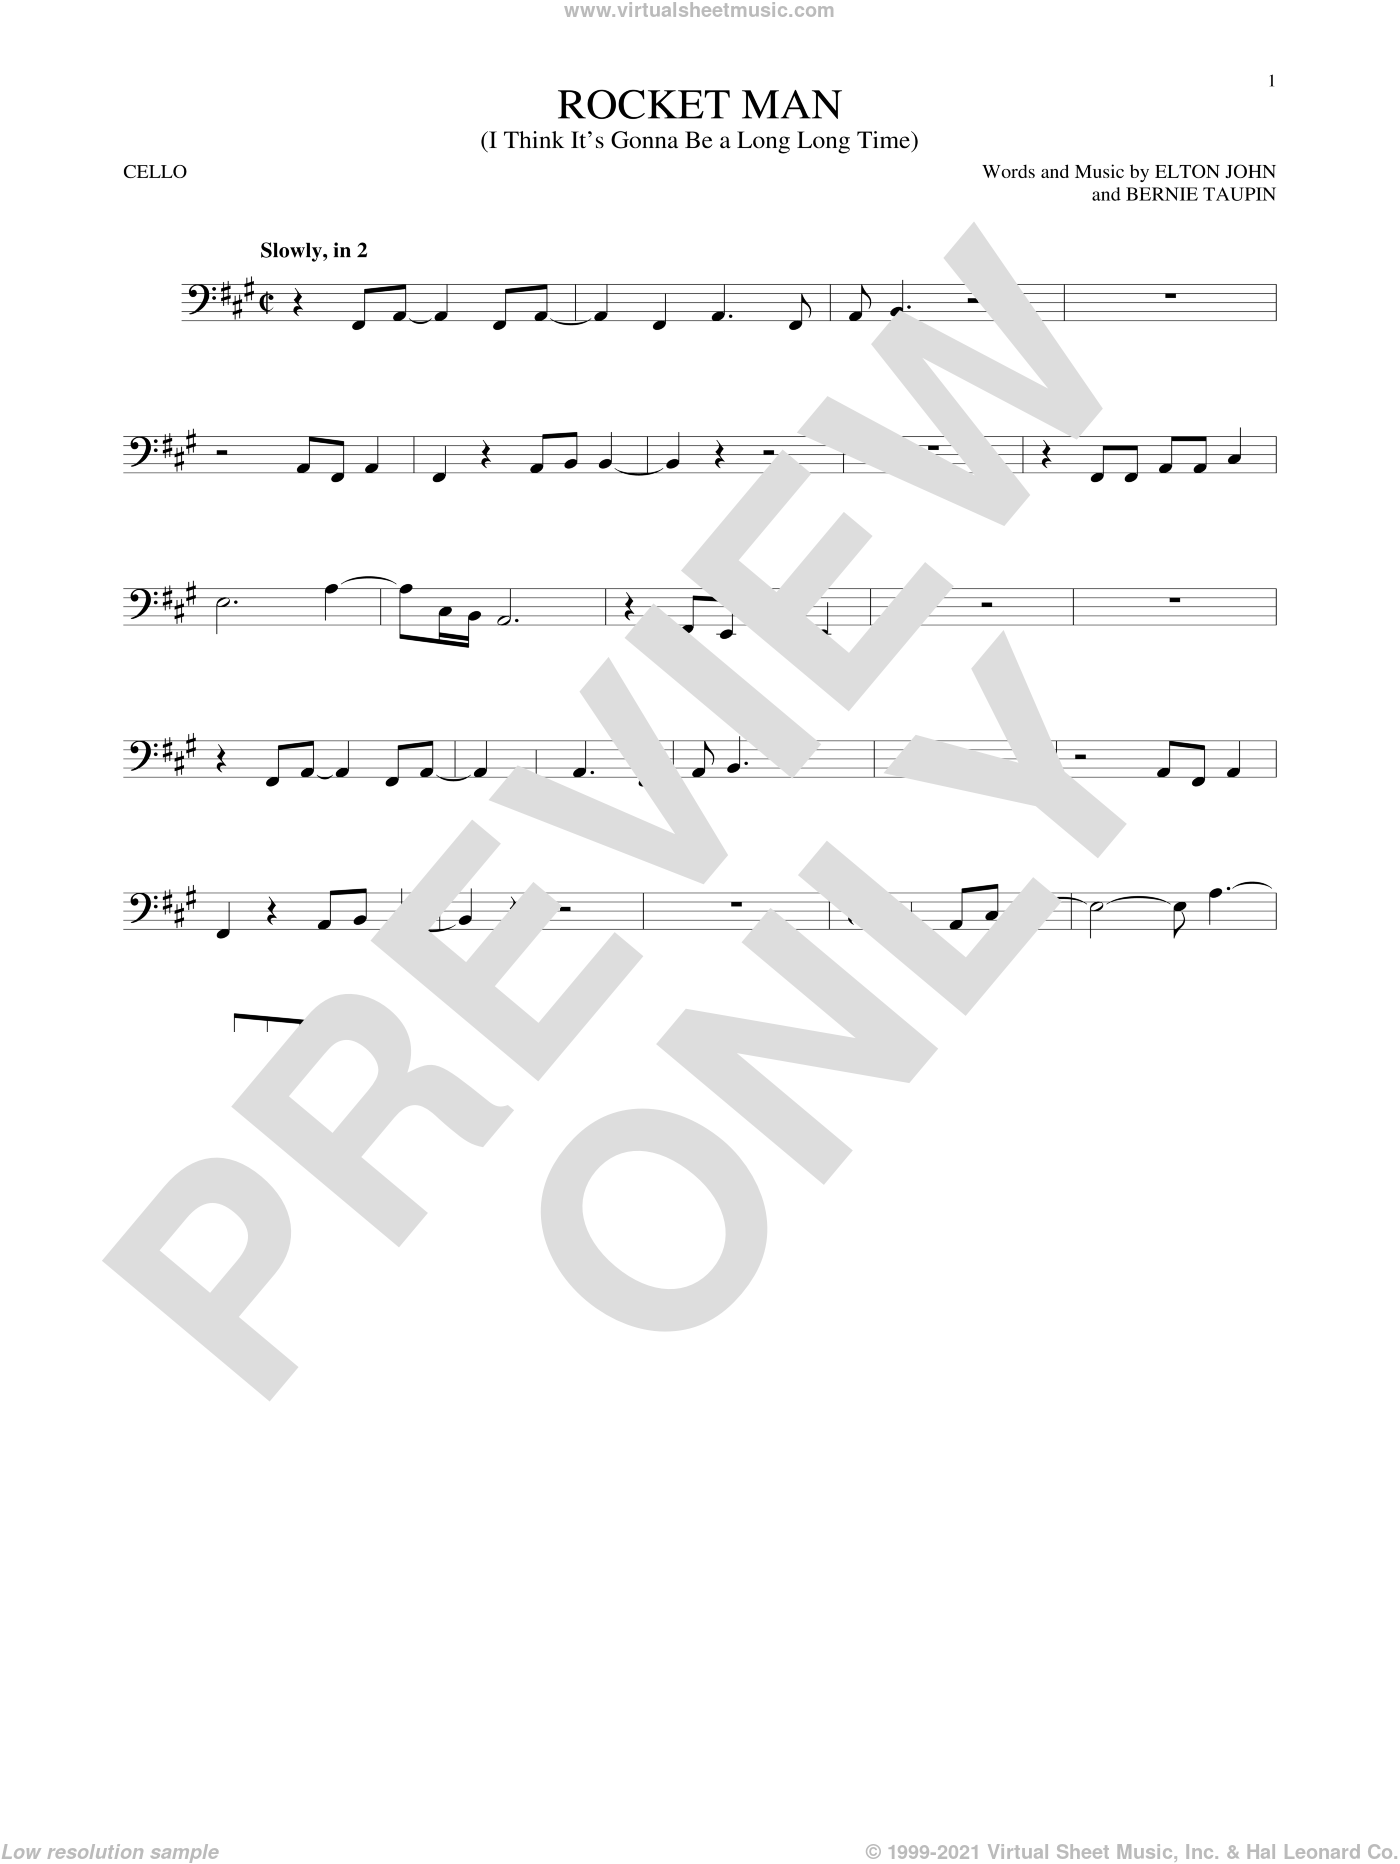 Rocket Man (I Think It's Gonna Be A Long Long Time) sheet music for cello solo by Elton John and Bernie Taupin, intermediate skill level